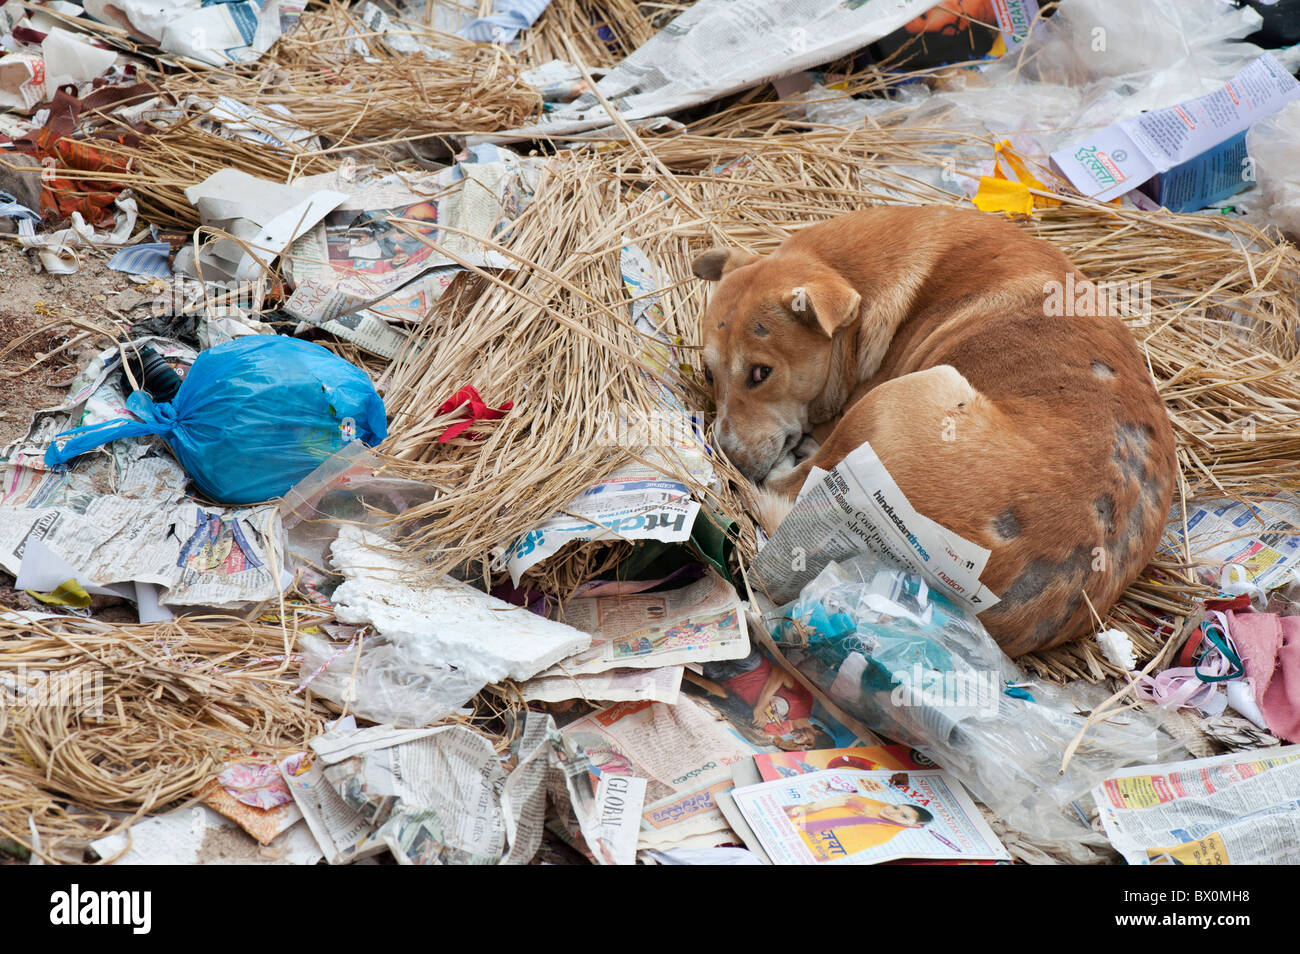 Indian stray dog with mange sleeping in a rubbish tip in the street. Andhra Pradesh, India - Stock Image